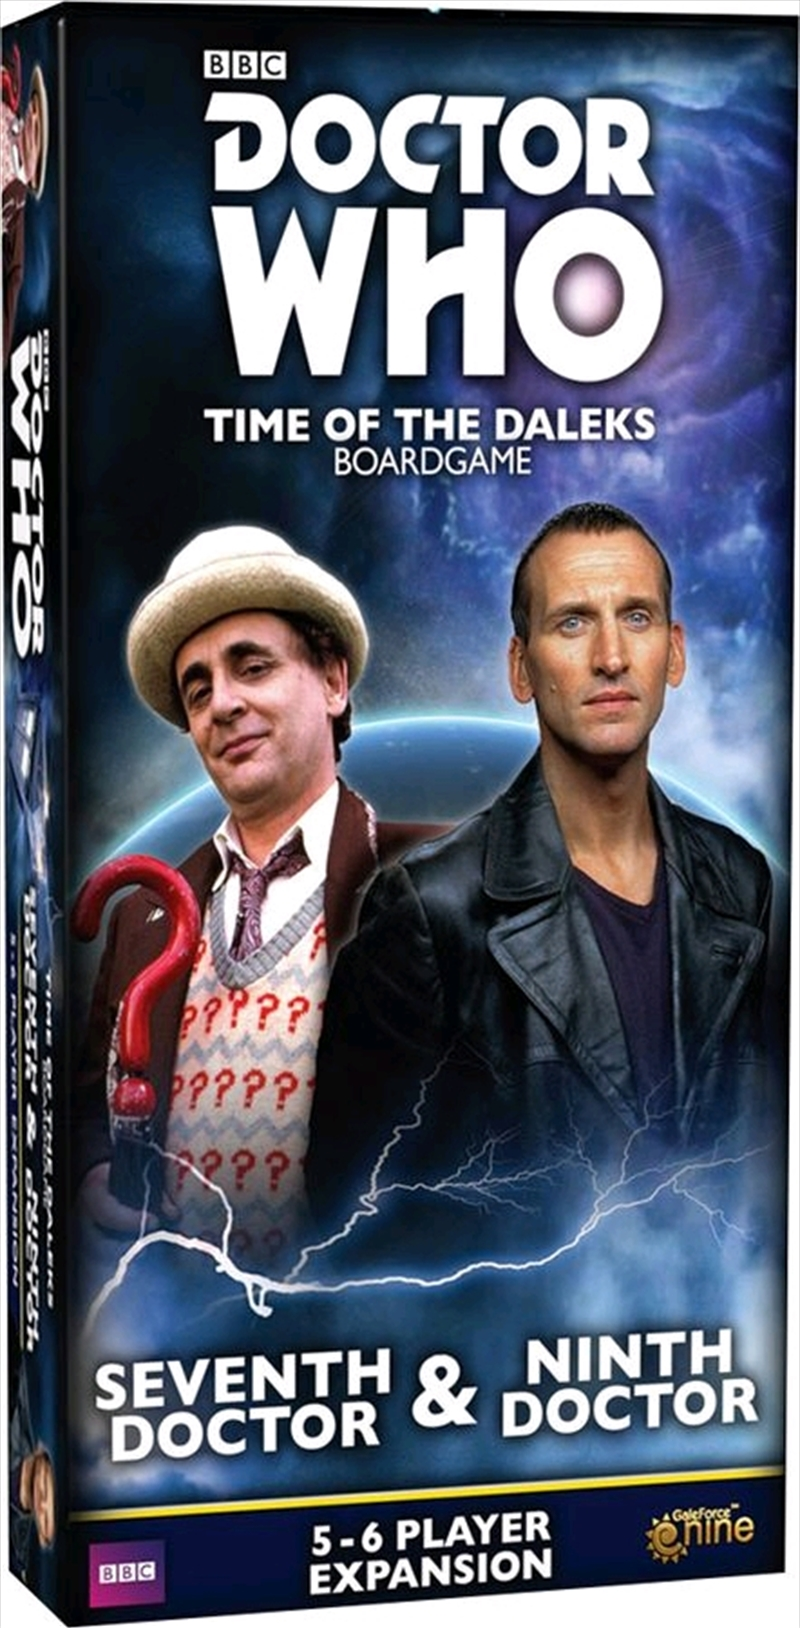 Doctor Who - Time of the Daleks Seventh & Ninth Doctor Expansion | Merchandise